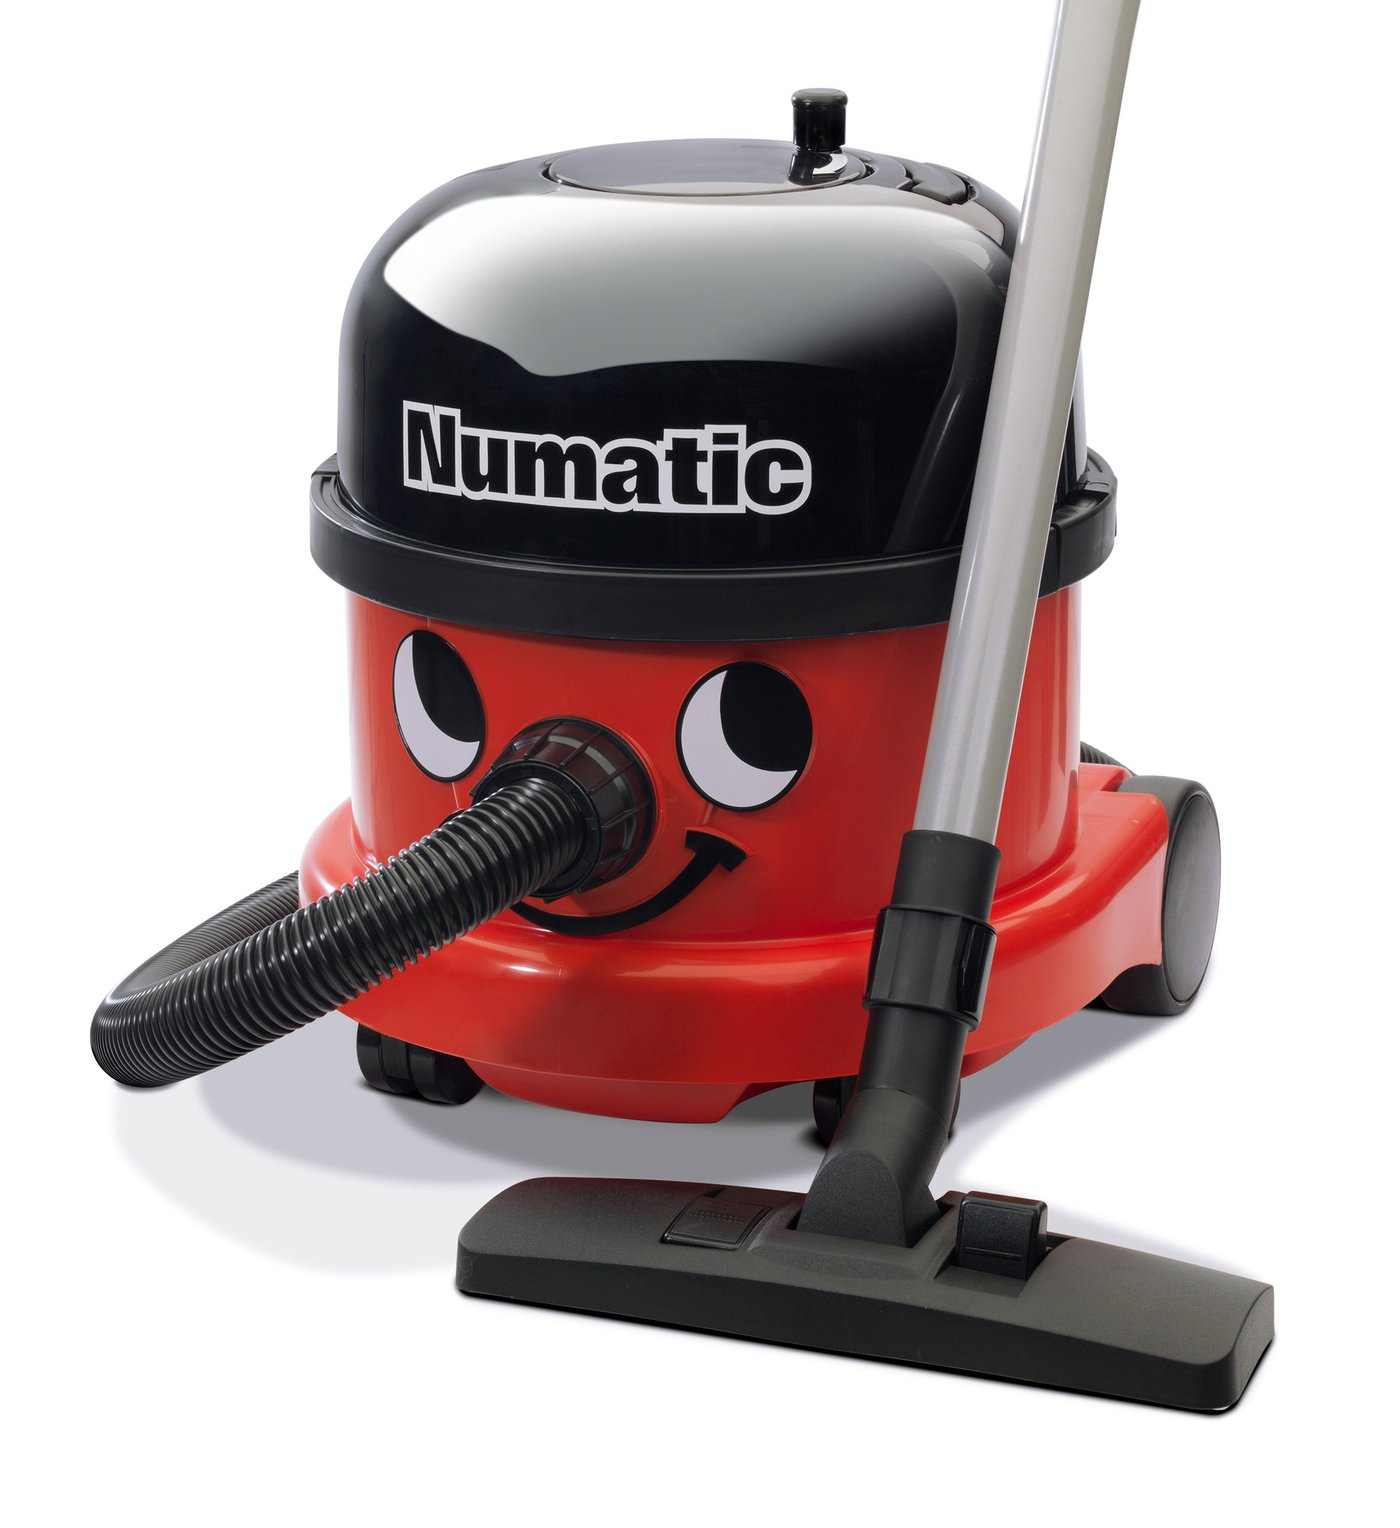 240V NRV200 Numatic 'Henry-type' Professional Vacuum Cleaner